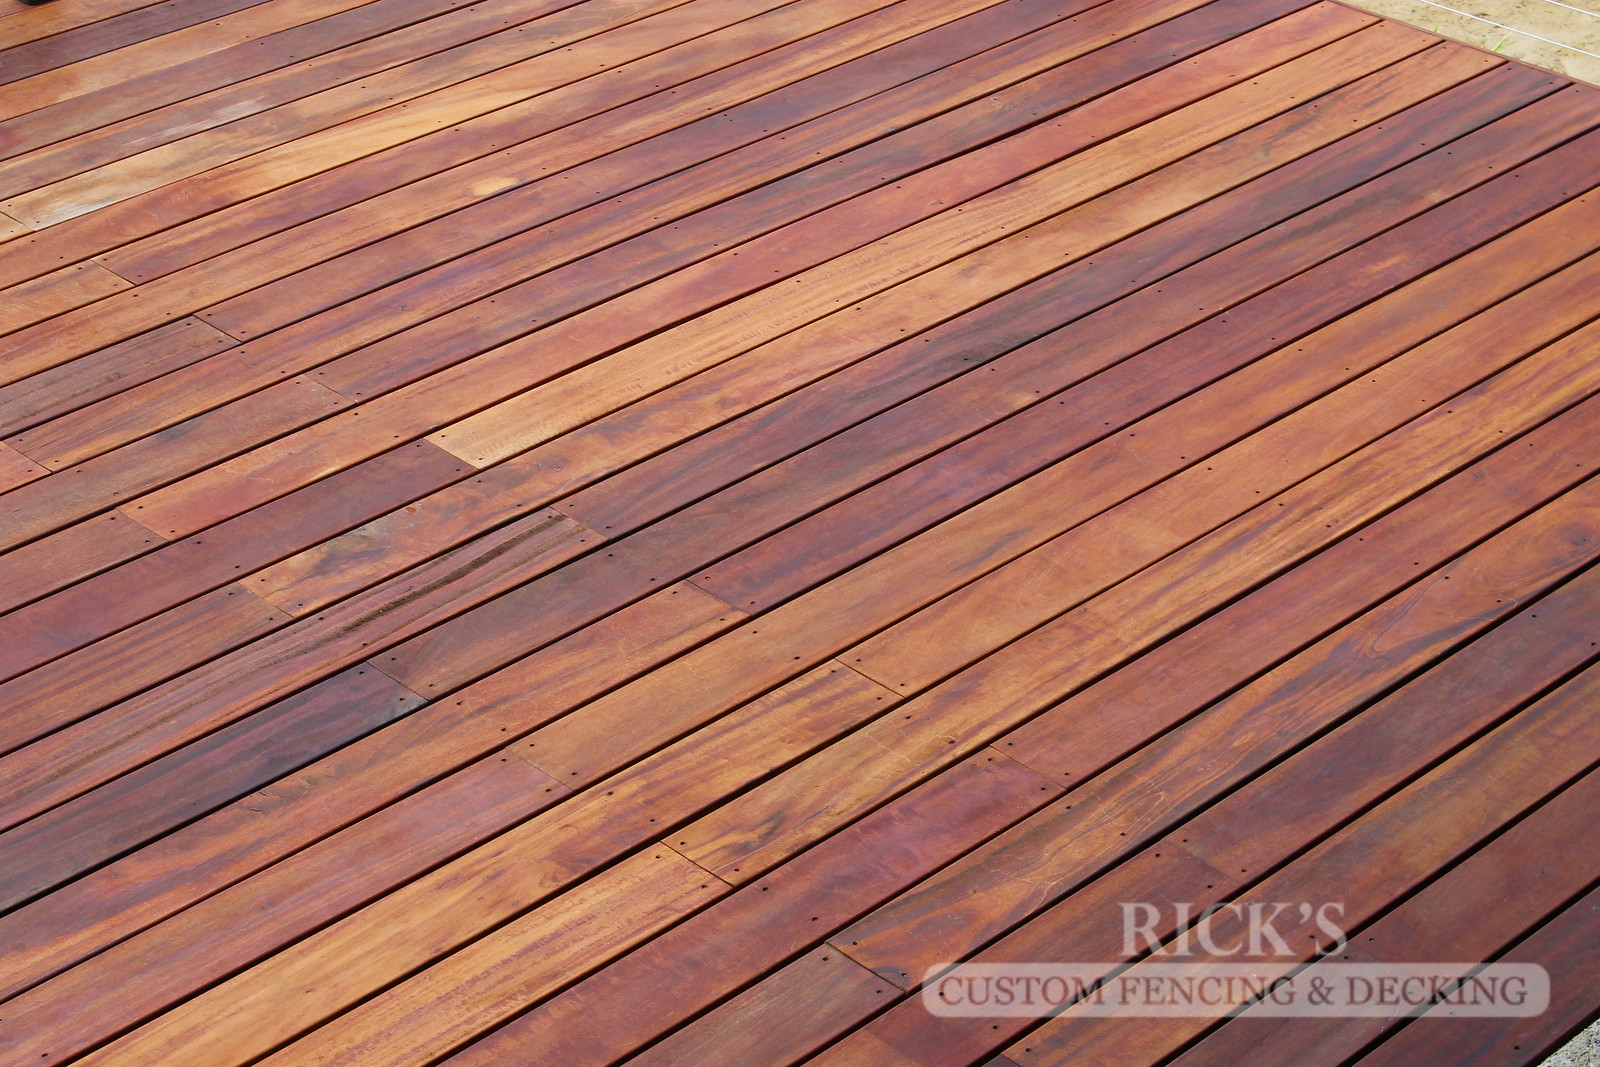 1114 - TigerWood Hardwood Decking